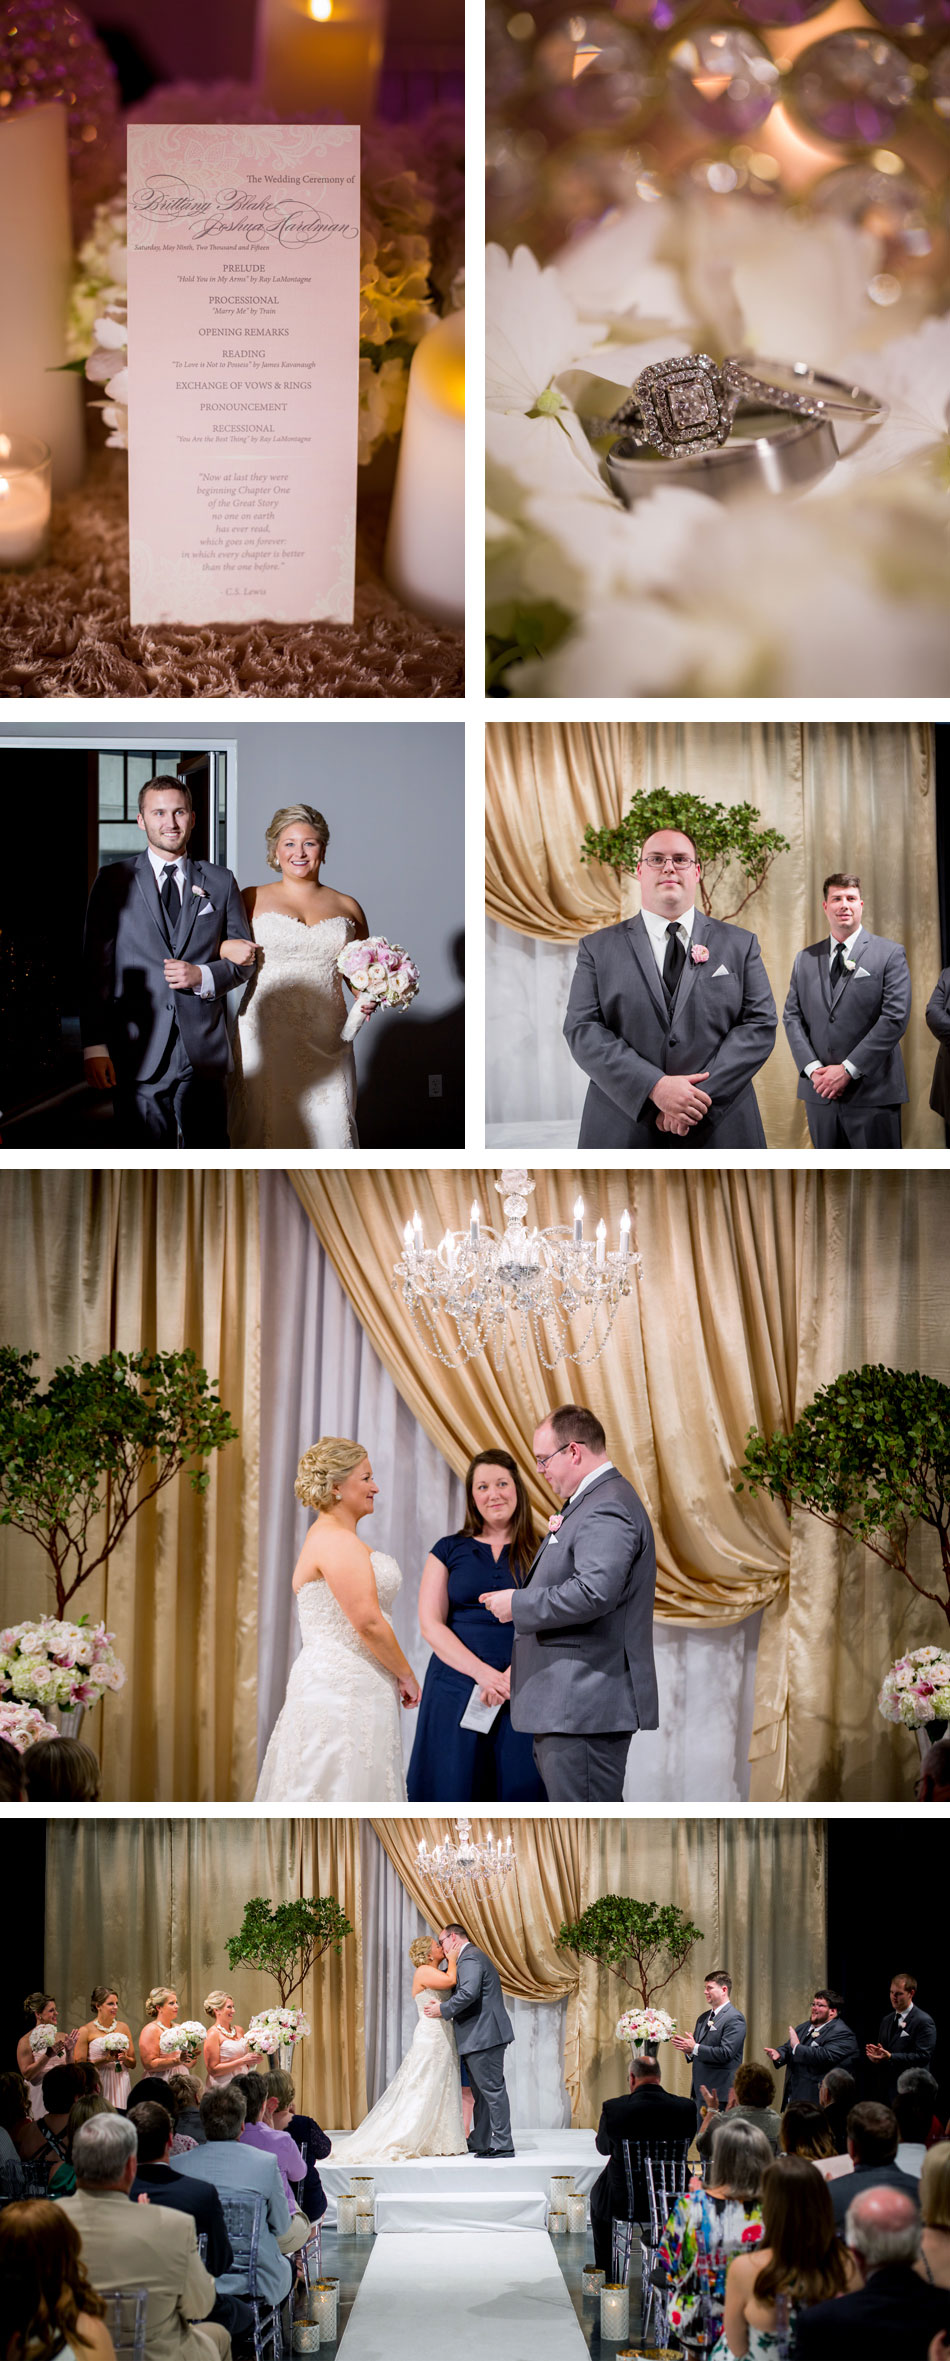 The Foundry Wedding Ceremony